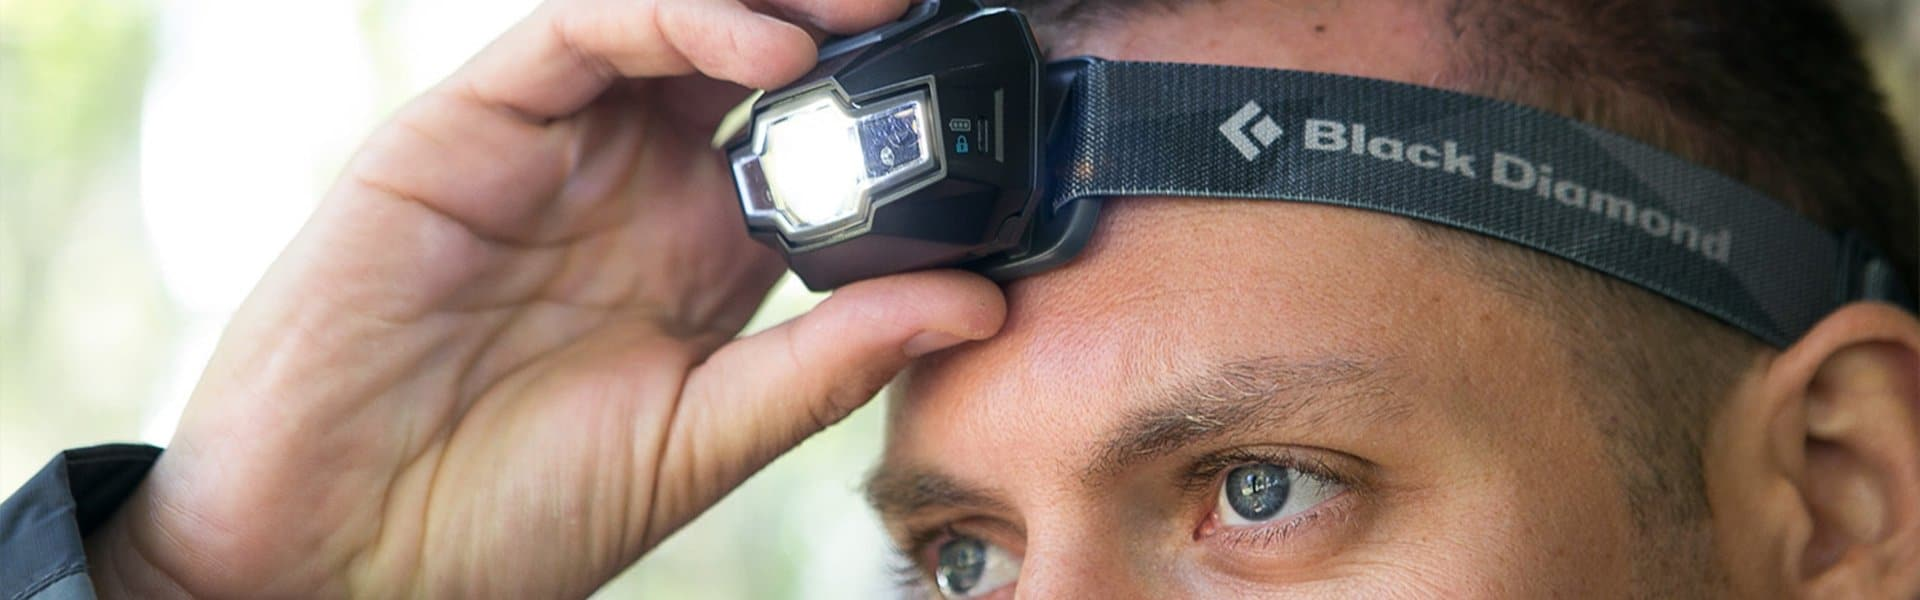 Best Headlamps for Hiking Reviewed in Detail